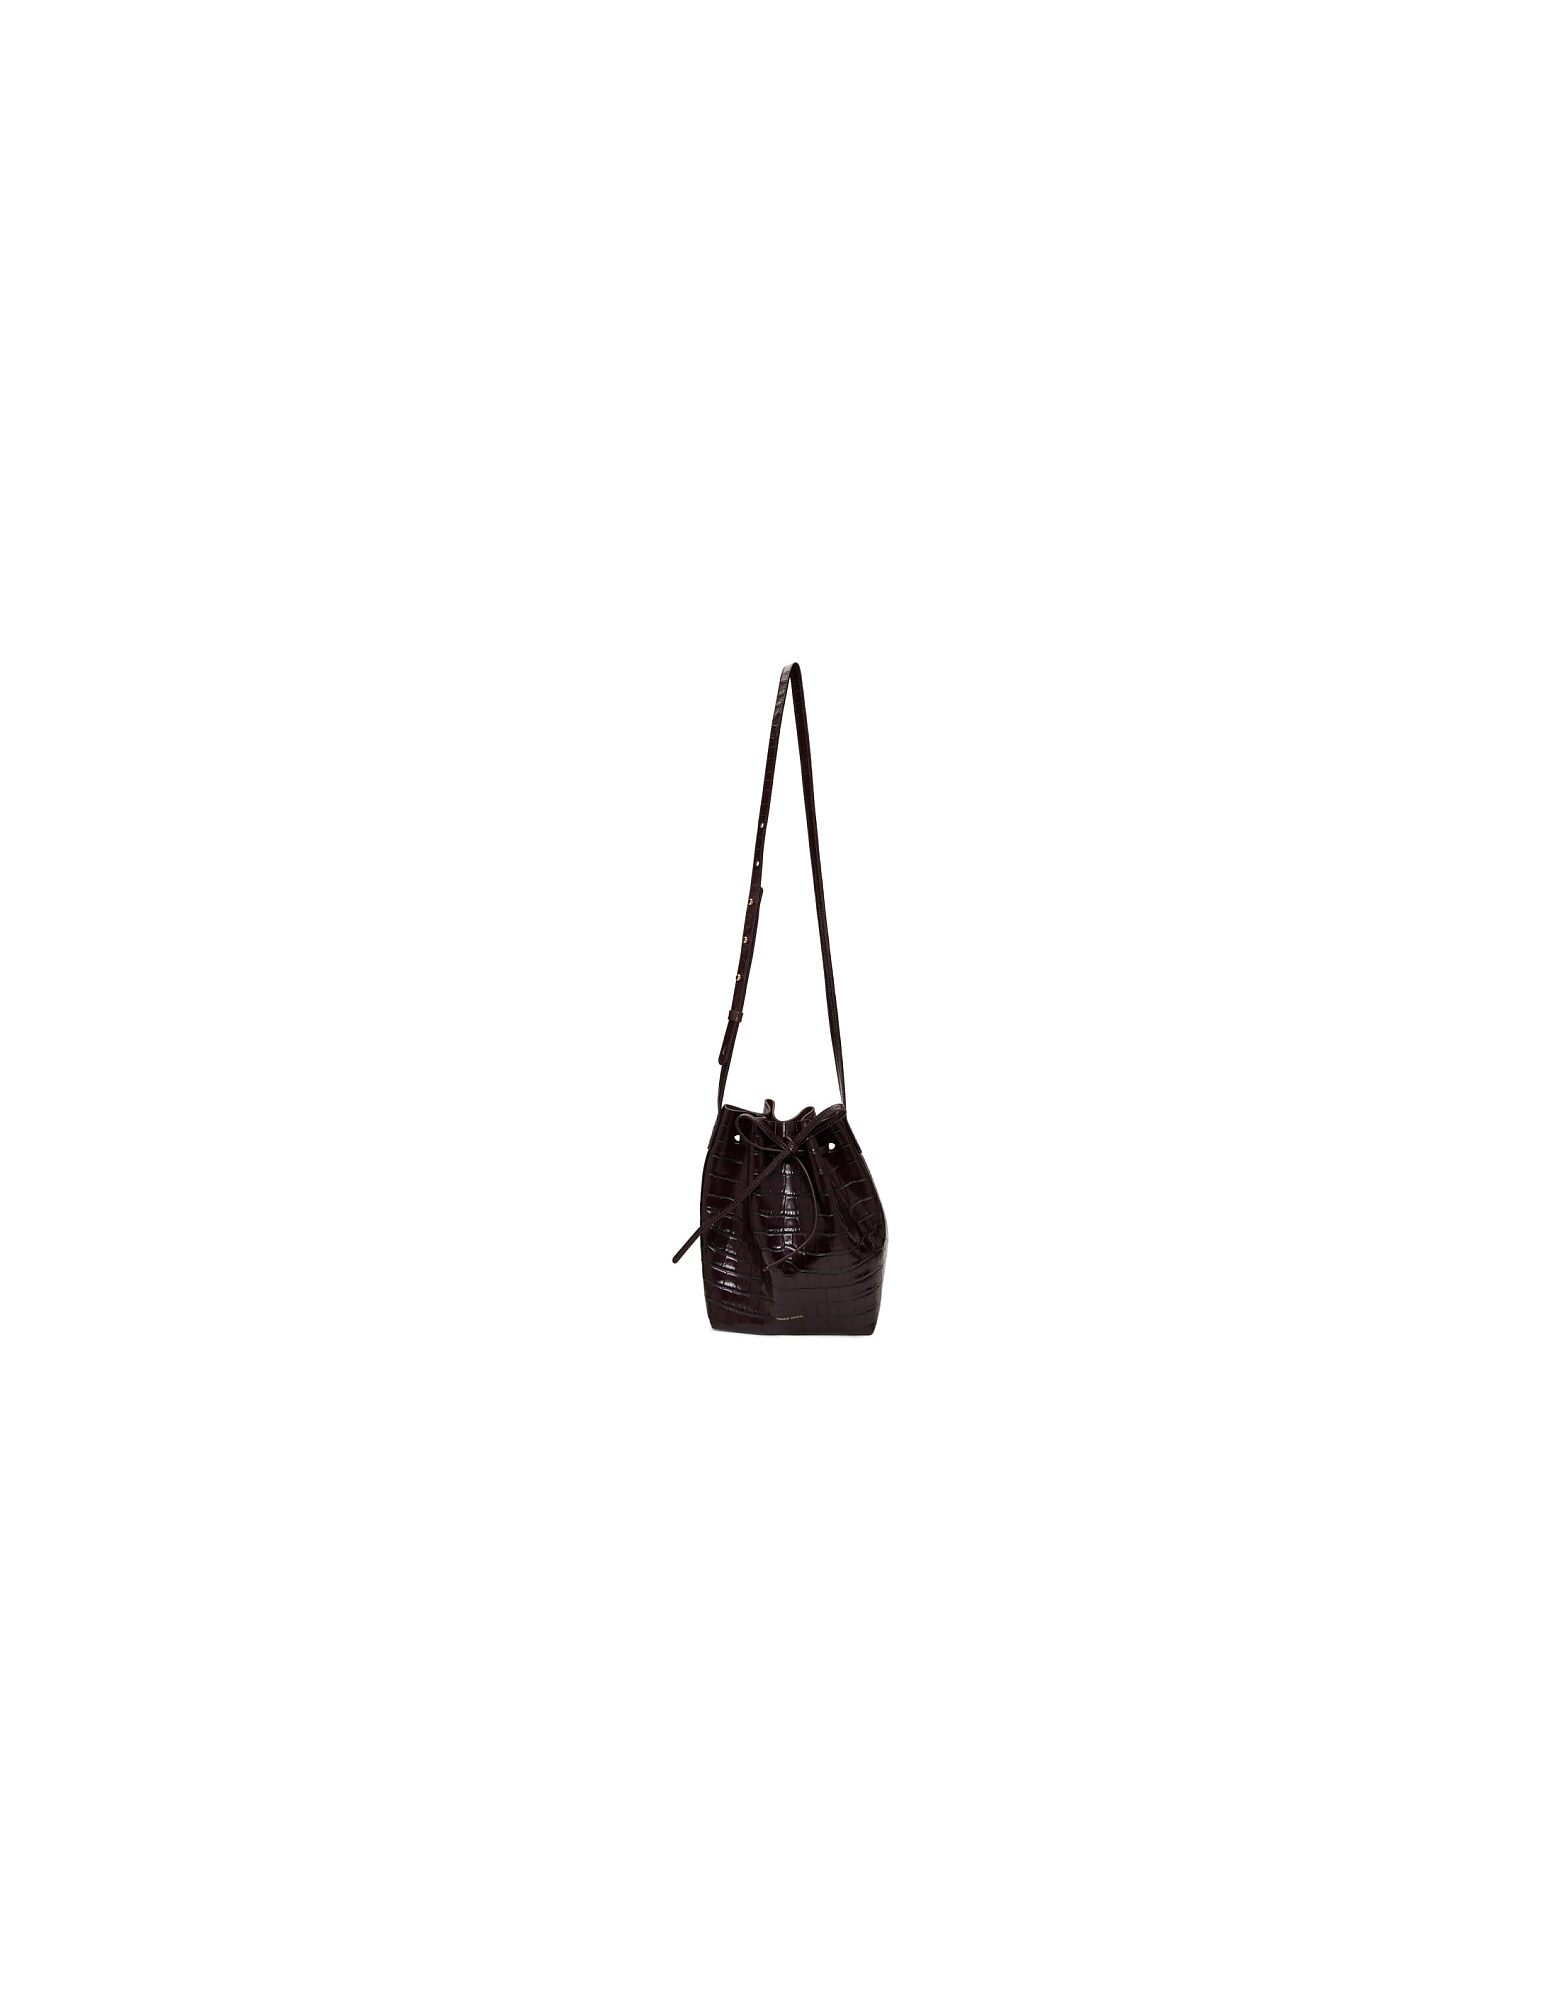 Mansur Gavriel Designer Handbags, Burgundy Croc Mini Bucket Bag